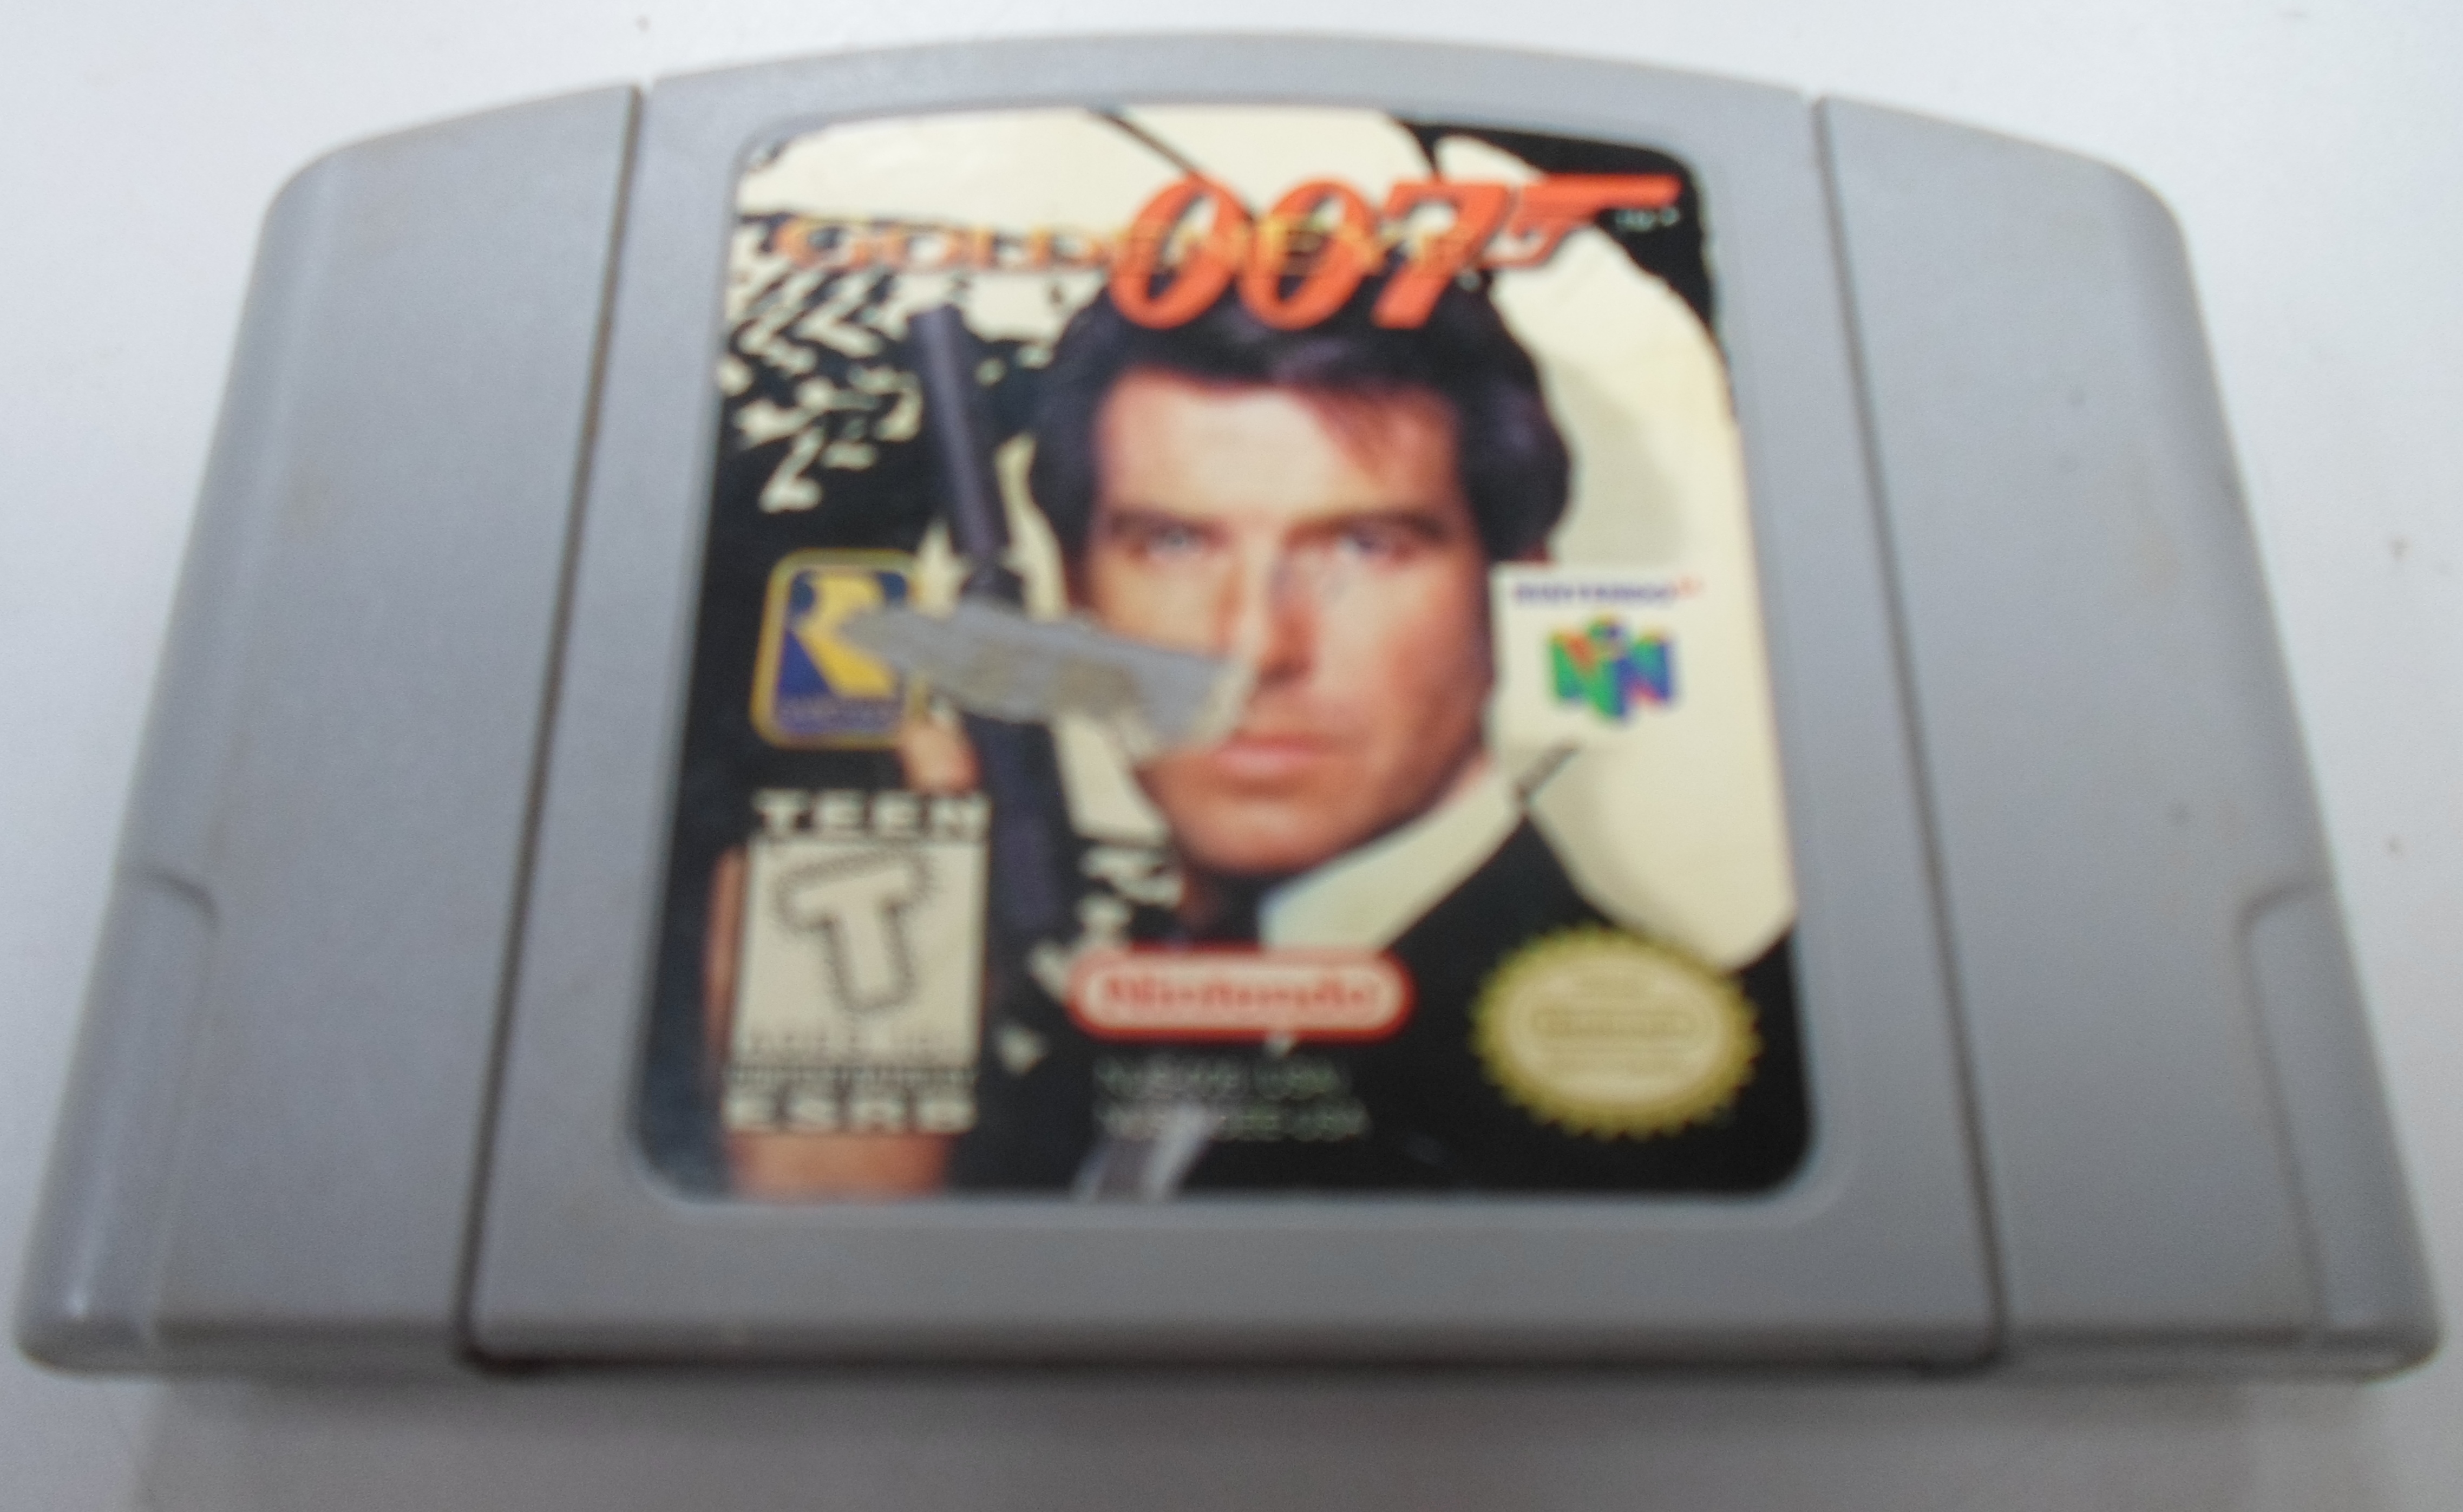 007 GOLDENEYE NOT TESTED AS IS FOR NINTENDO 64